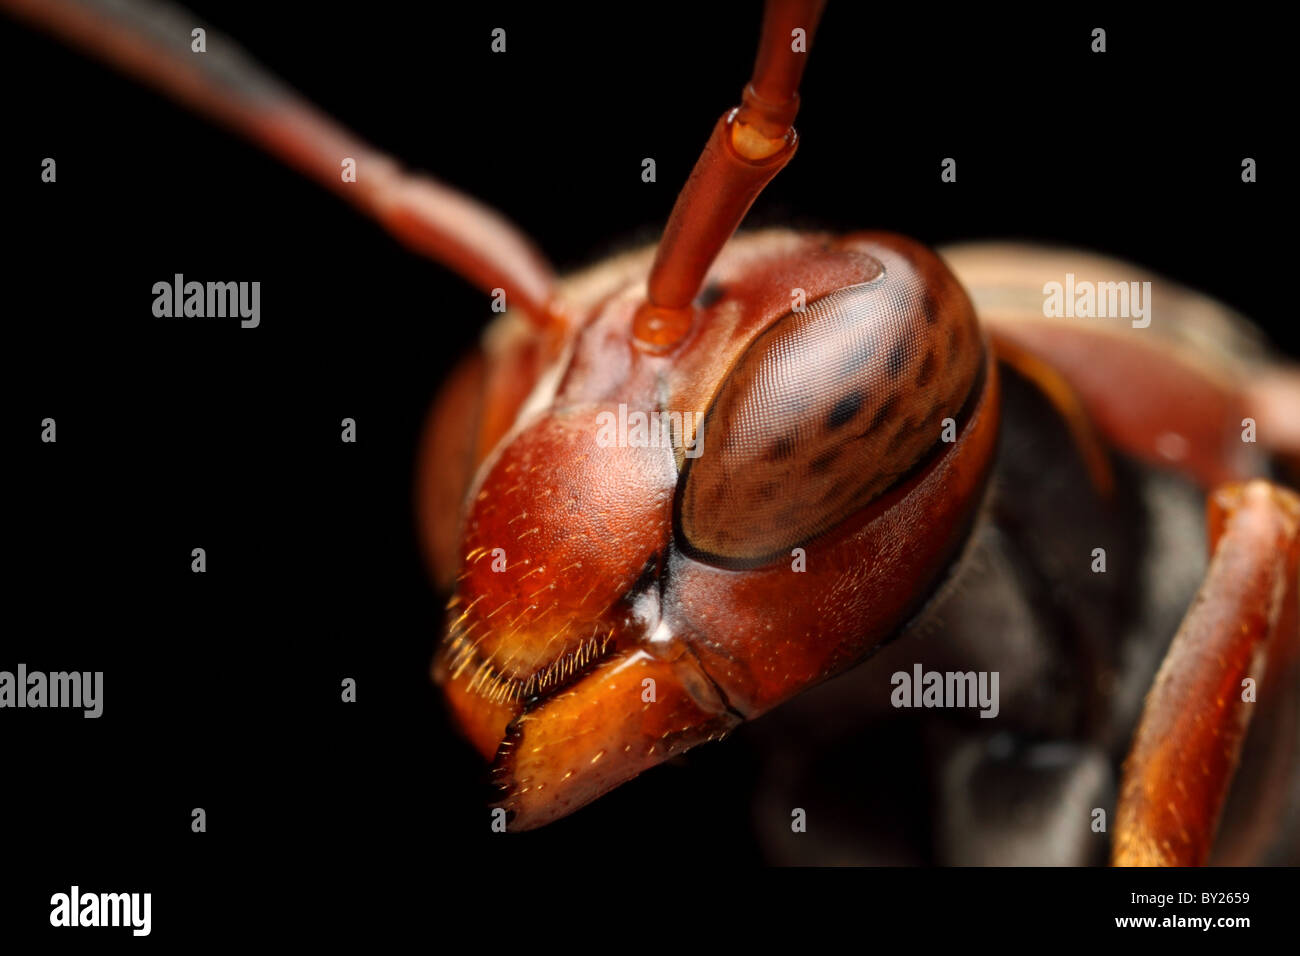 Portrait of a red wasp with 3x magnification - Stock Image